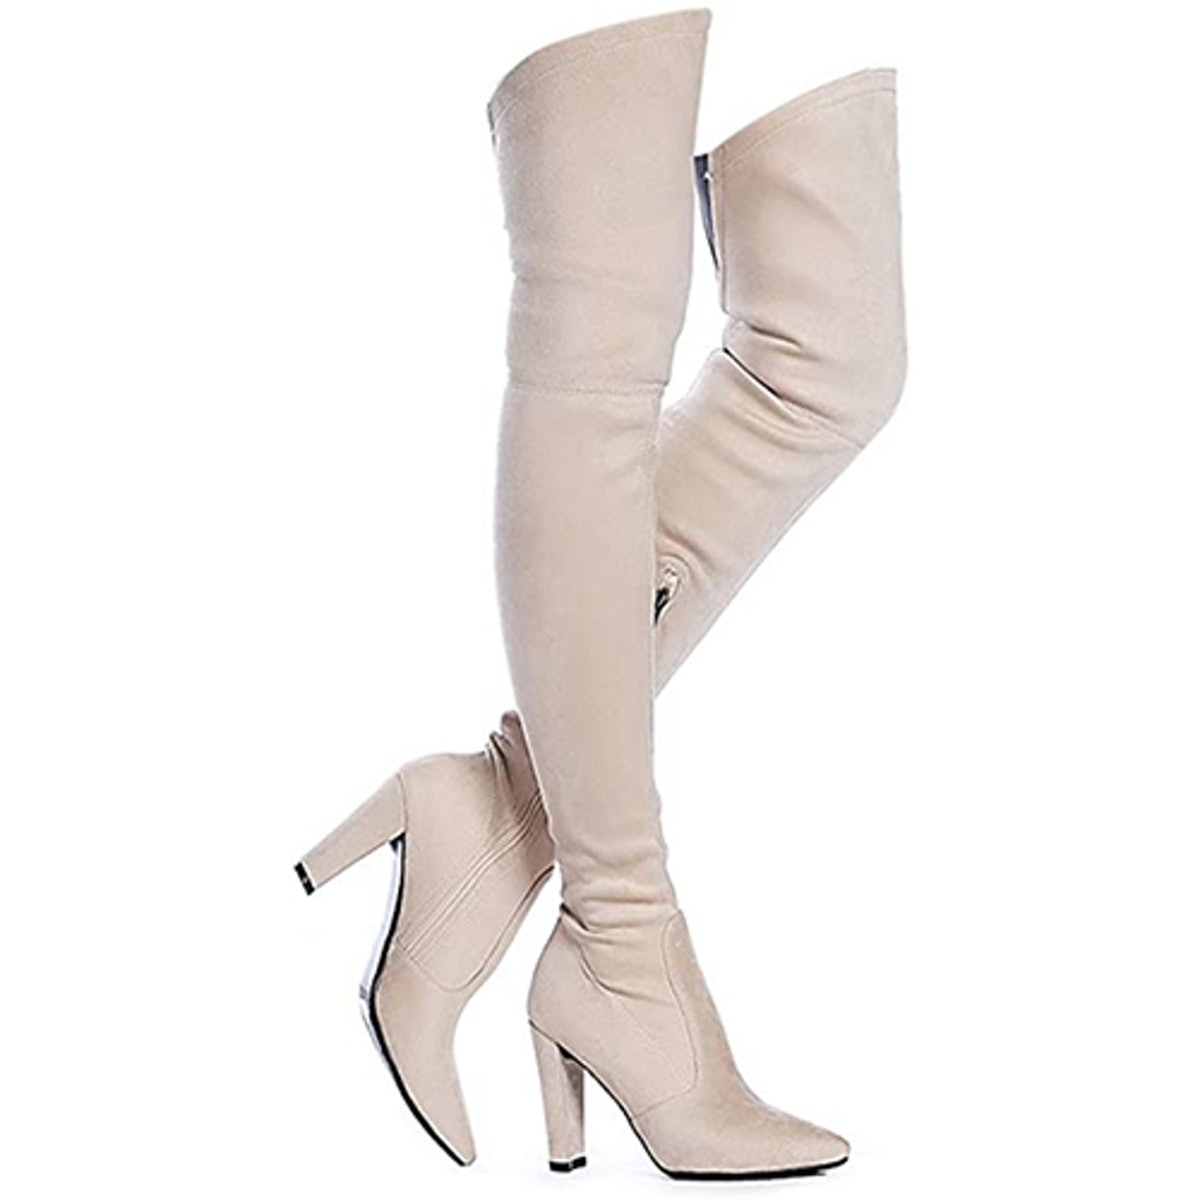 Shoe 'N' Tale Heeled Thigh-High Boots